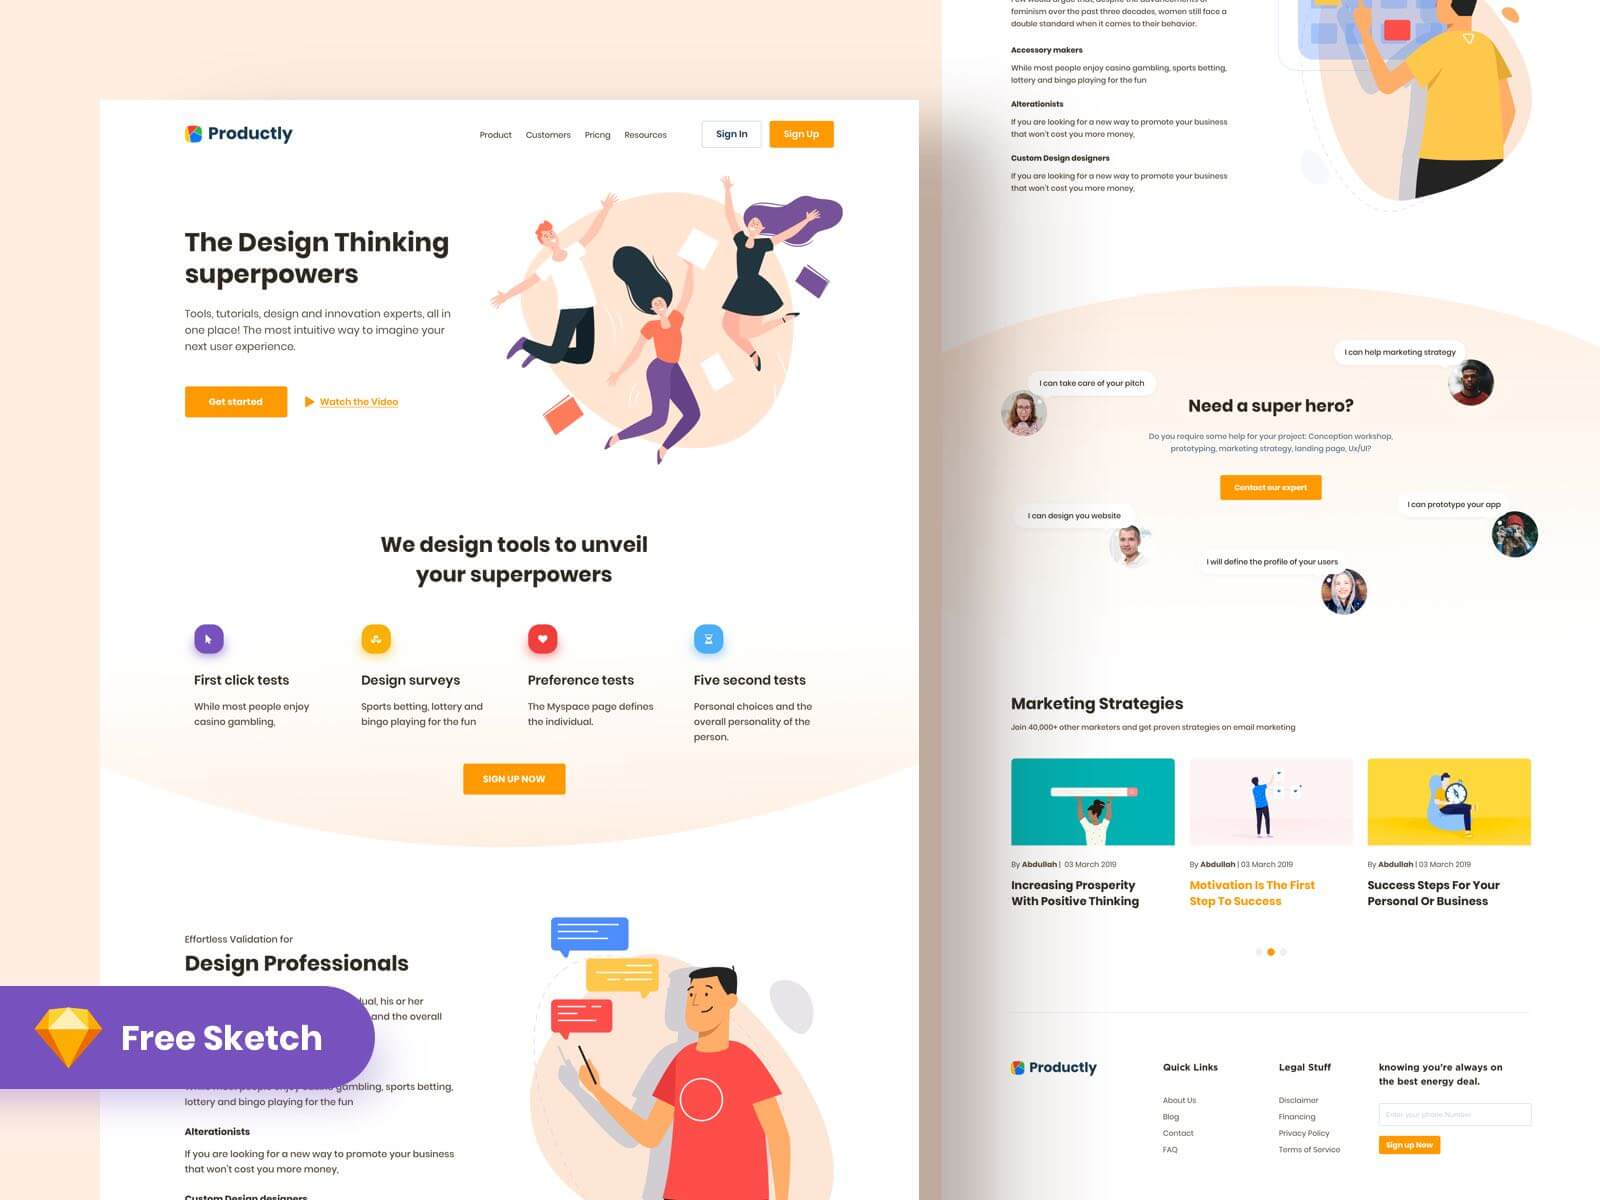 Landing page design for Productly